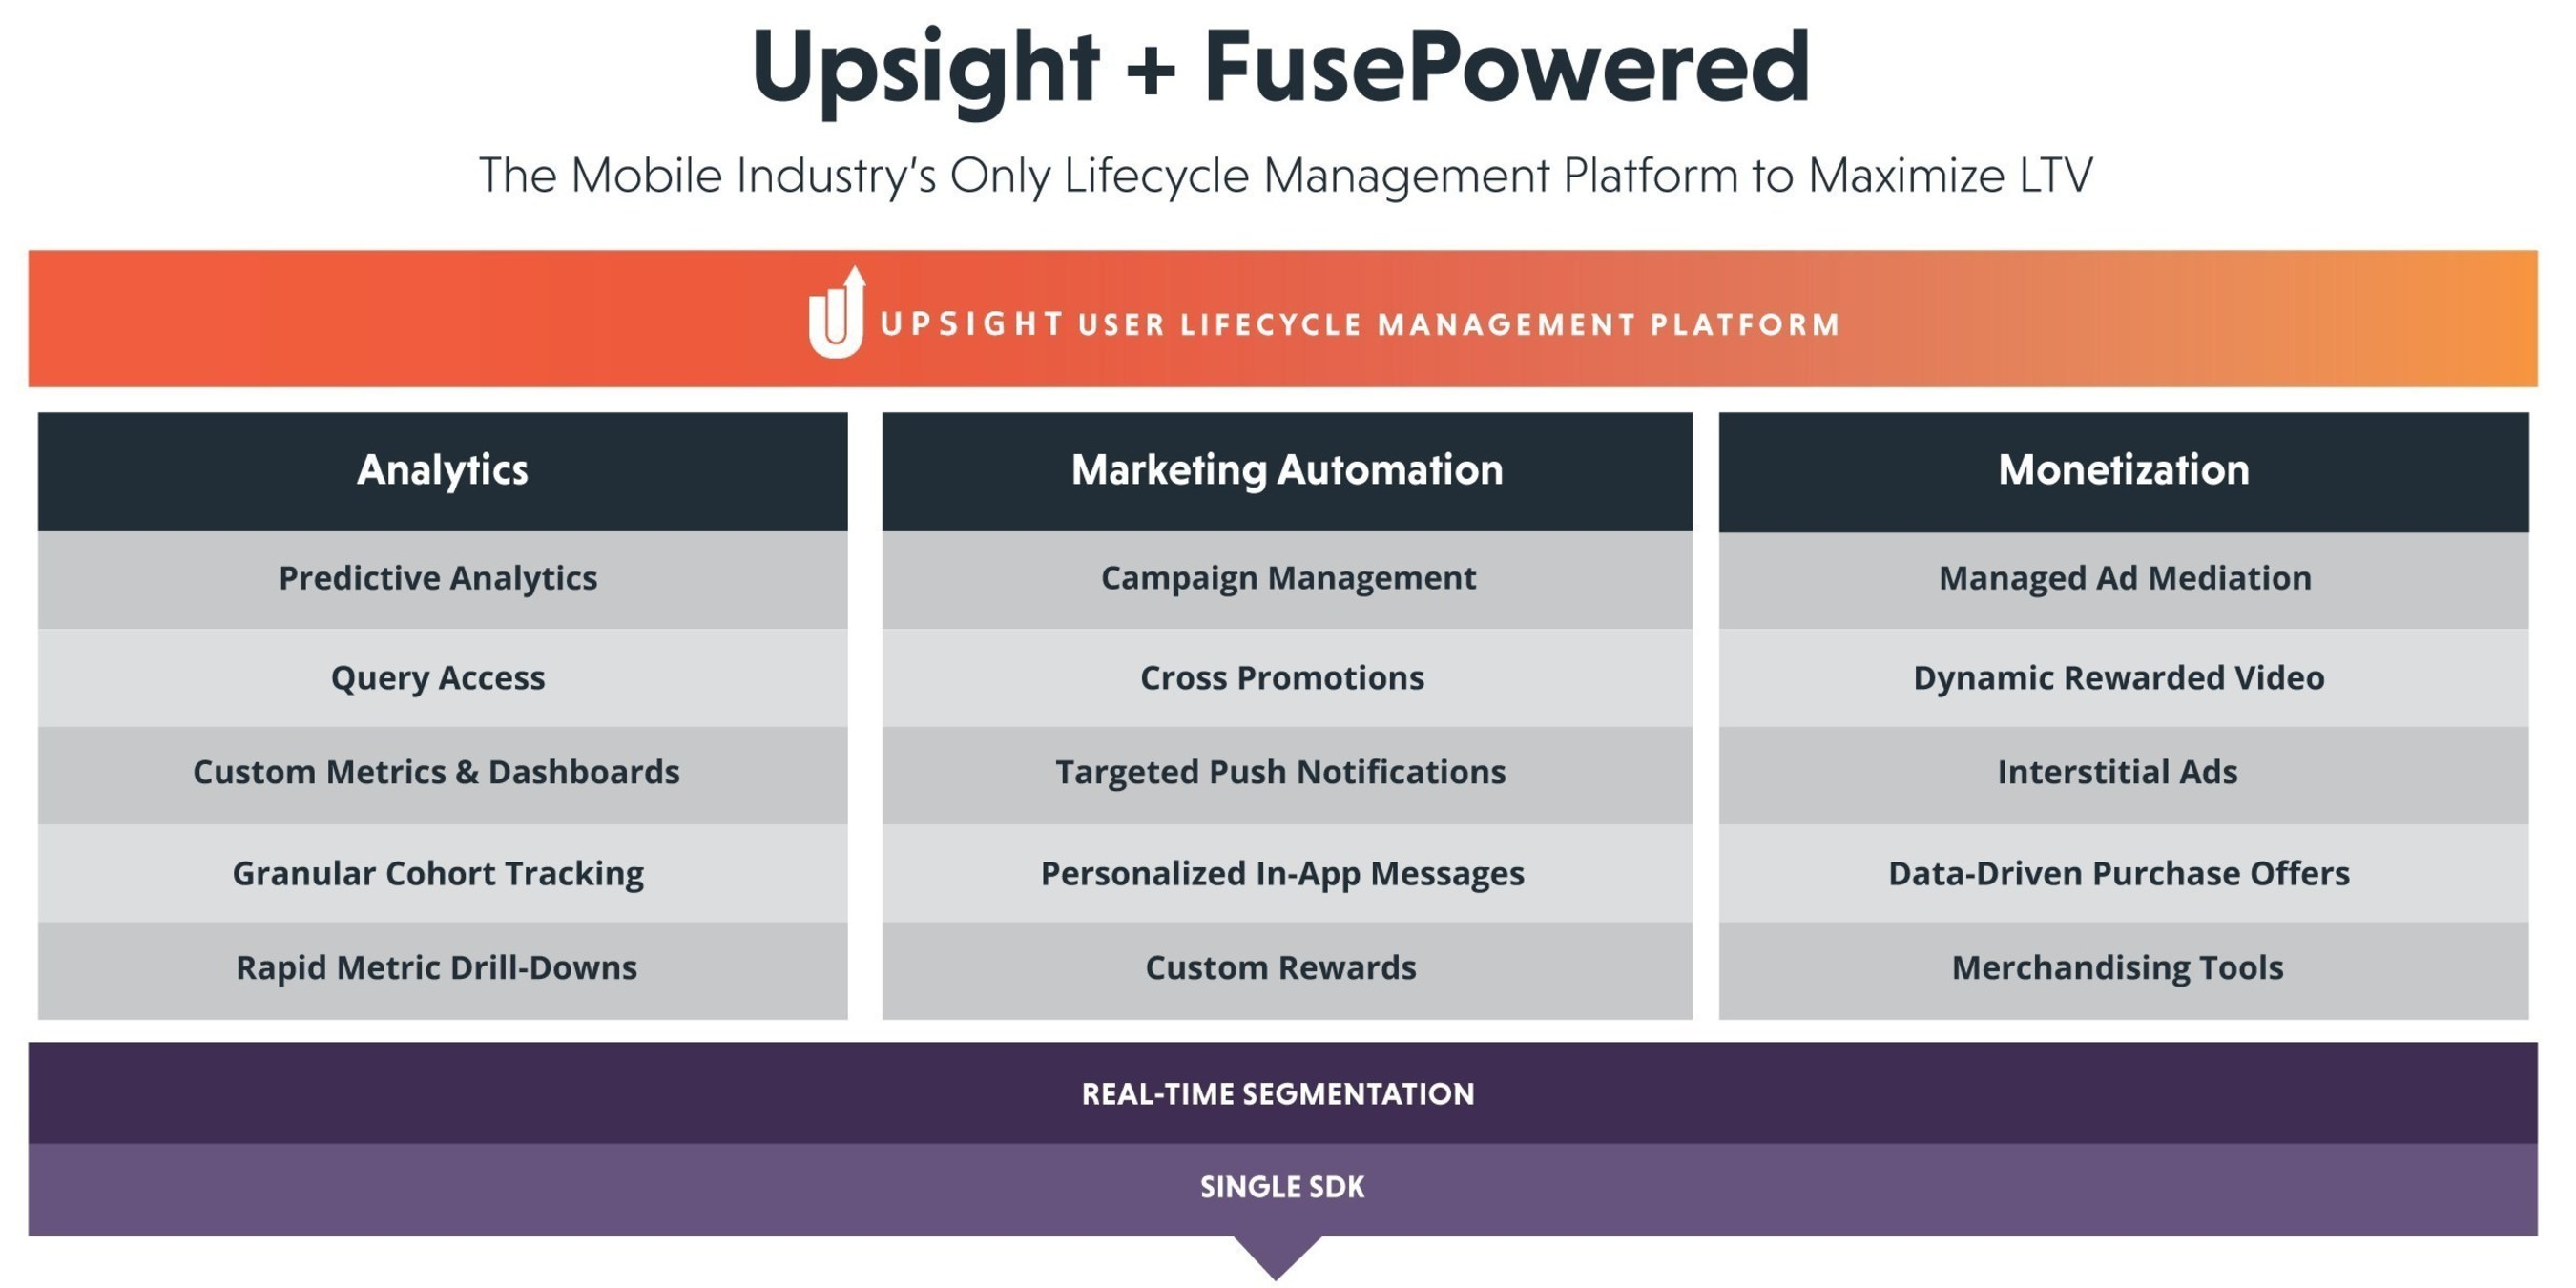 Upsight Acquires Fuse Powered, Creating the Mobile Industry's Most Comprehensive User Lifecycle Management Platform to Maximize LTV. The Mobile Platform includes Analytics, Marketing Automation and Monetization Tools leveraging Real-Time Segmentation, all from a single SDK.